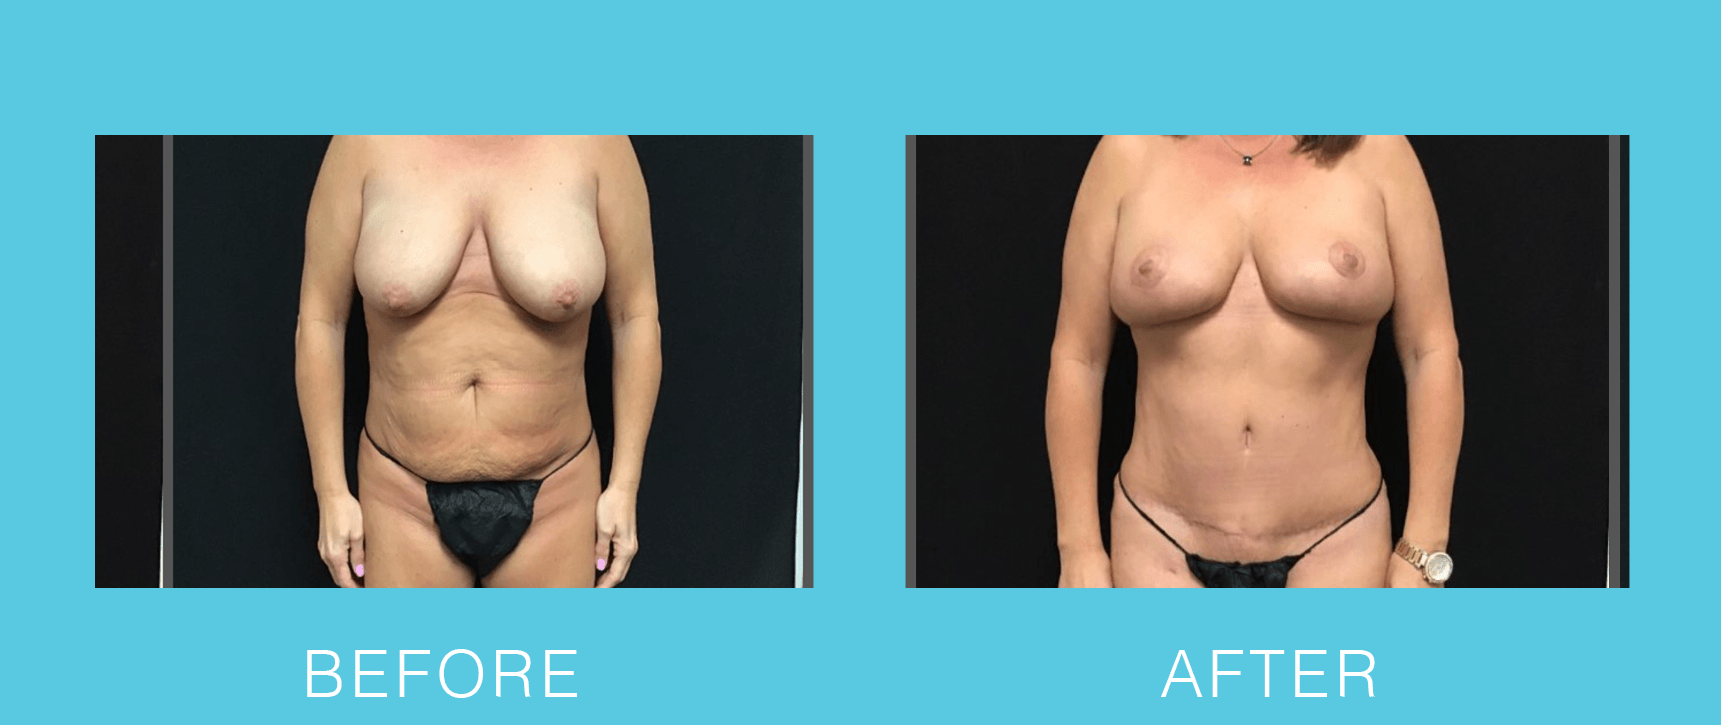 Breast Reduction and Lift with Abdominoplasty